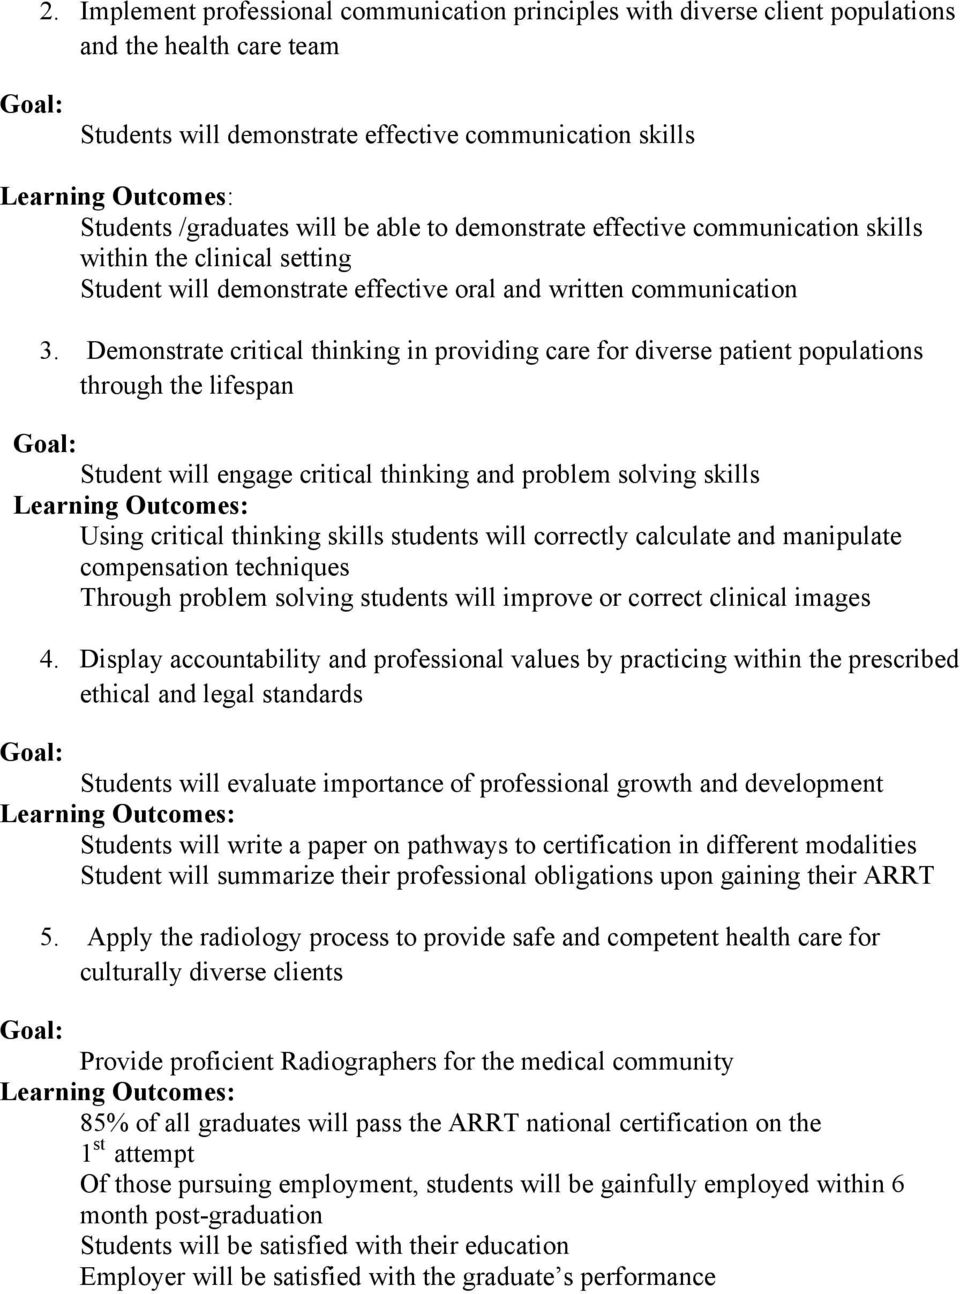 Demonstrate critical thinking in providing care for diverse patient populations through the lifespan Student will engage critical thinking and problem solving skills Using critical thinking skills